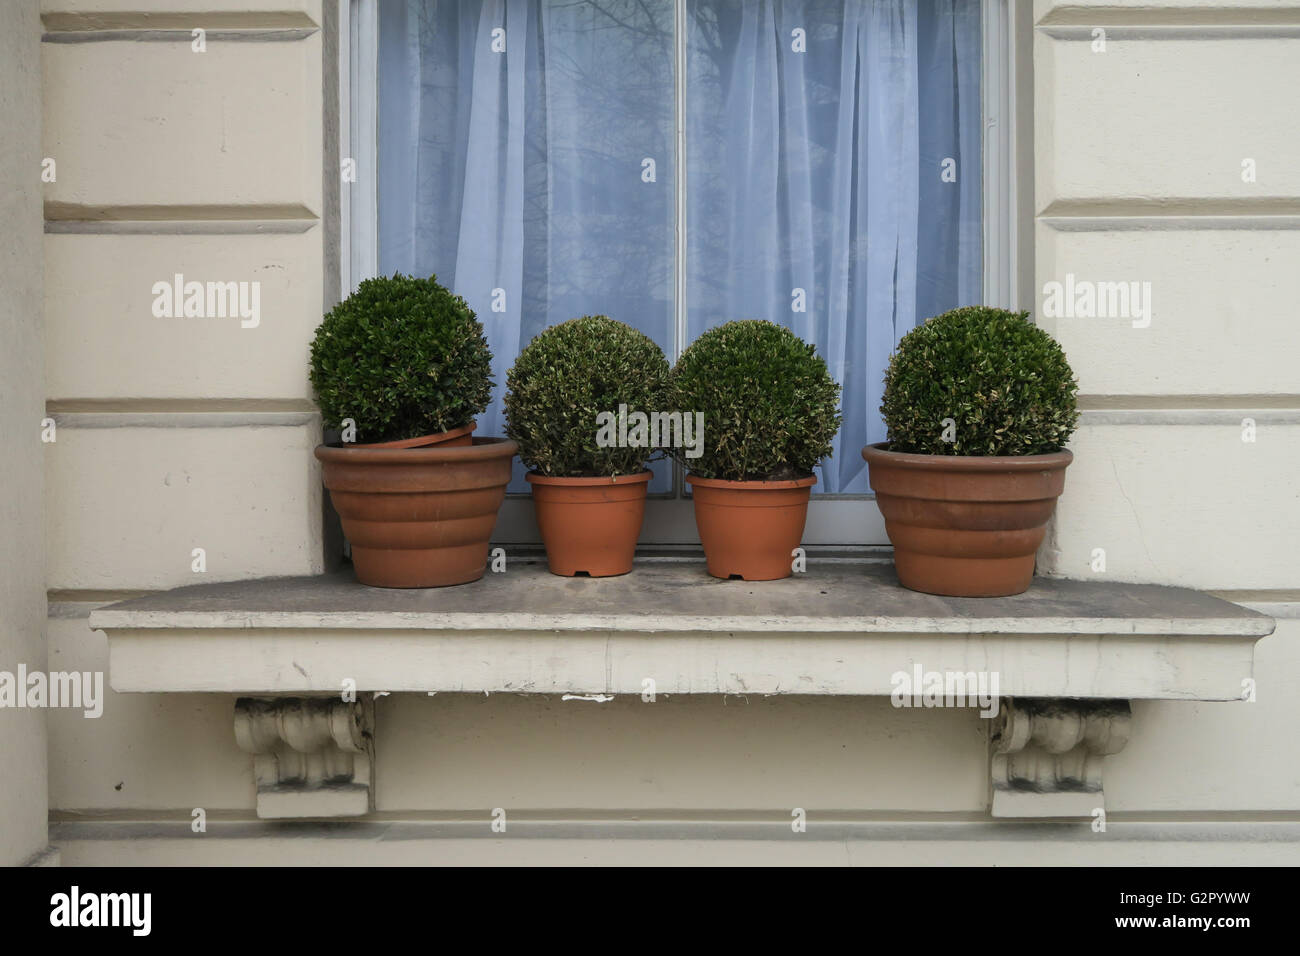 small round bushes in plant pots on windowsill - Stock Image